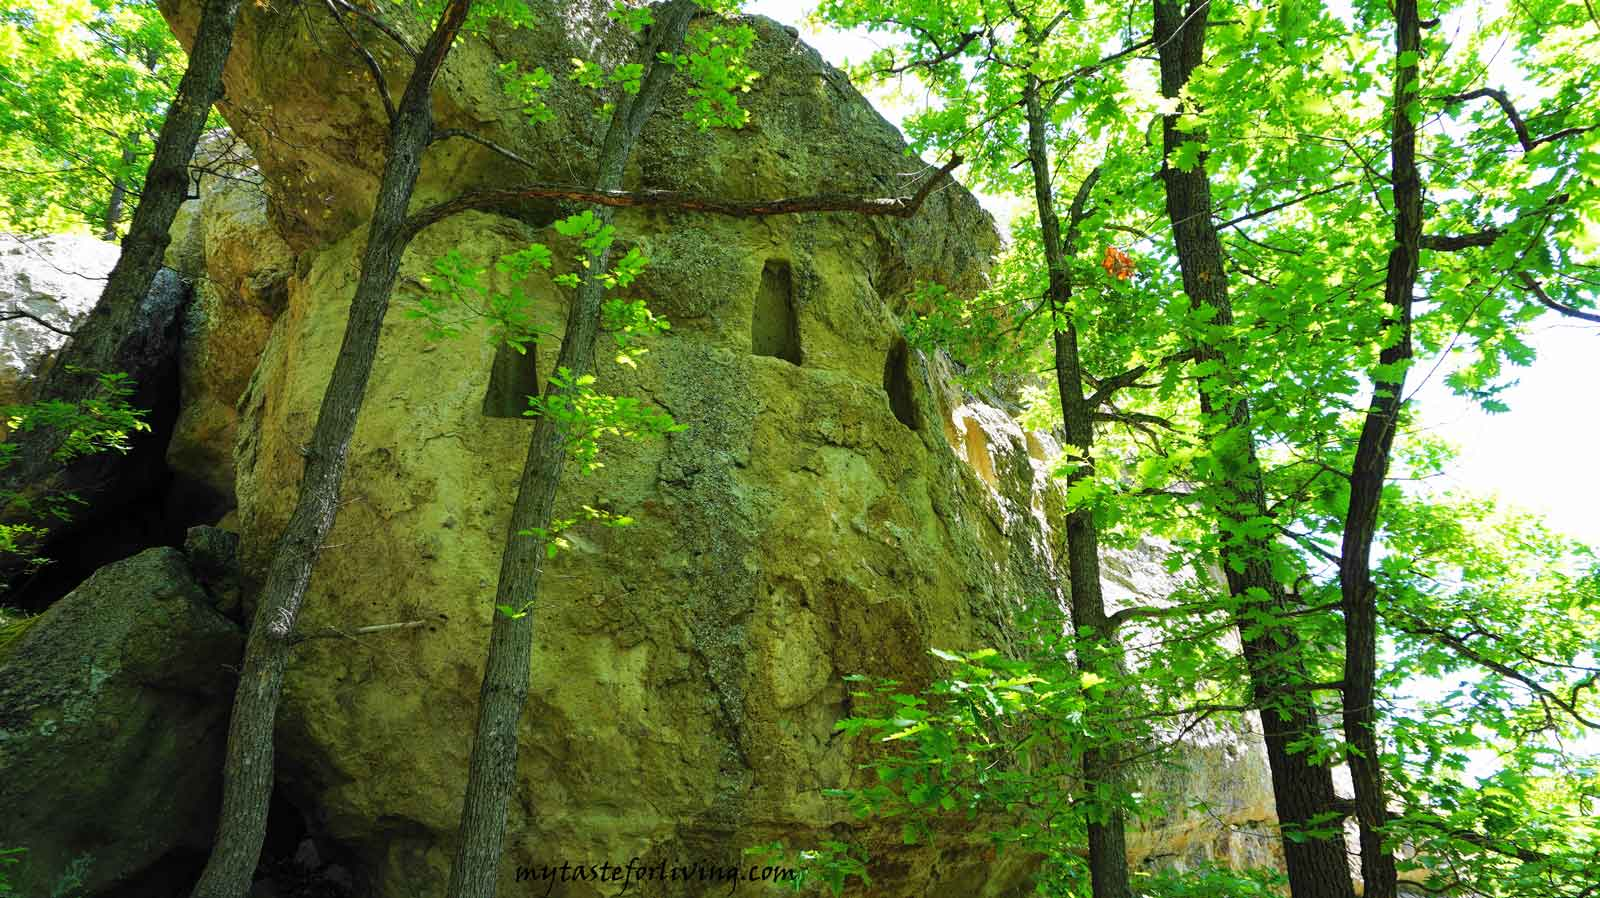 The thracian rock sanctuaries with mysterious trapezoidal rock niches carved in them are typical of the Eastern Rhodopes. The forests above the village of Nochevo are full of similar niches and small caves (like Kodja yin) and sharapani.